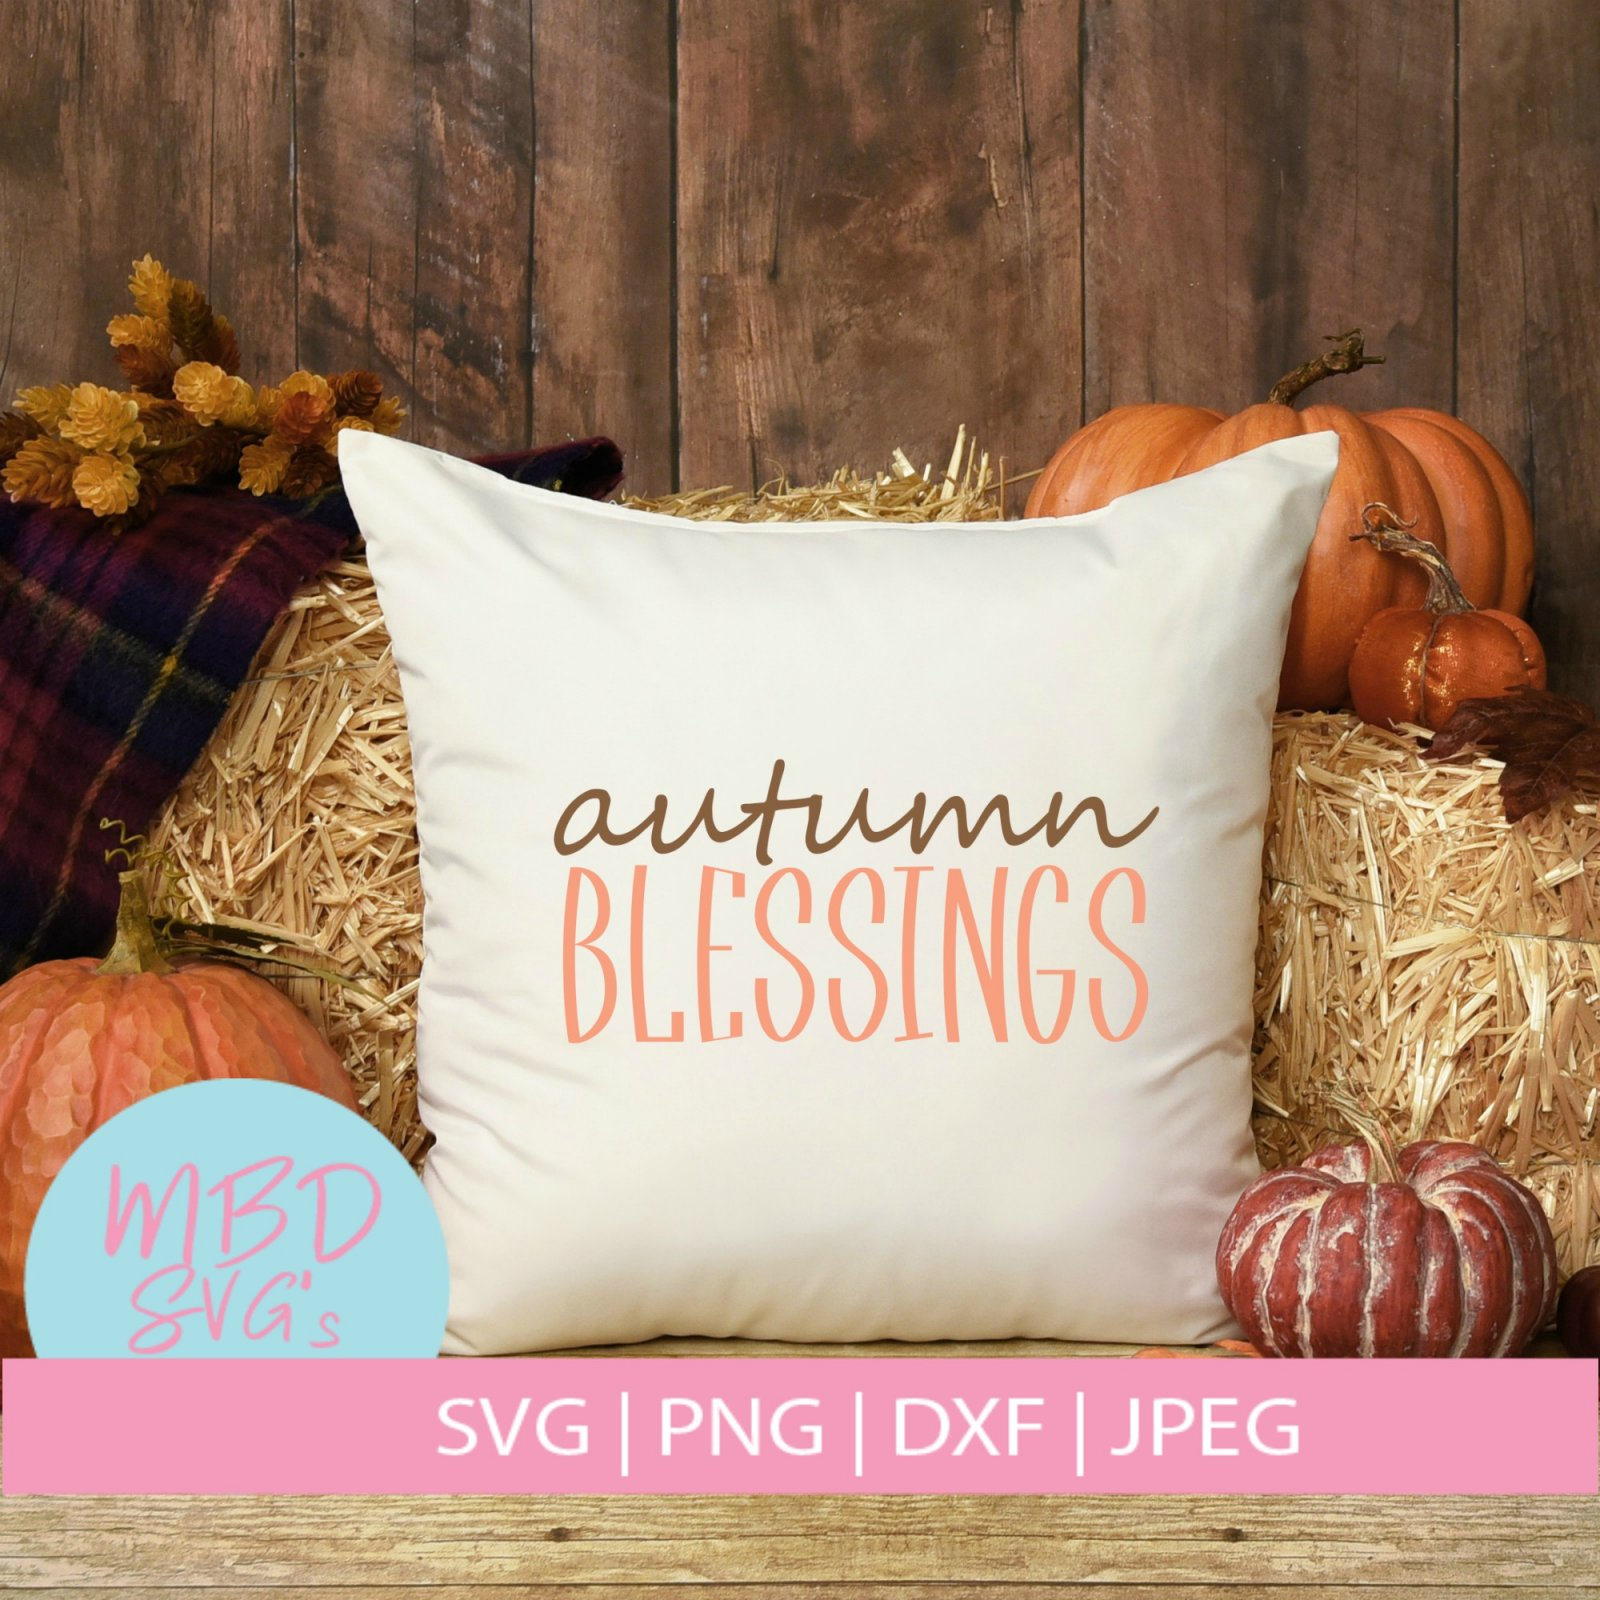 Autumn Blessings SVG File for Silhouette or Cricut  - copy